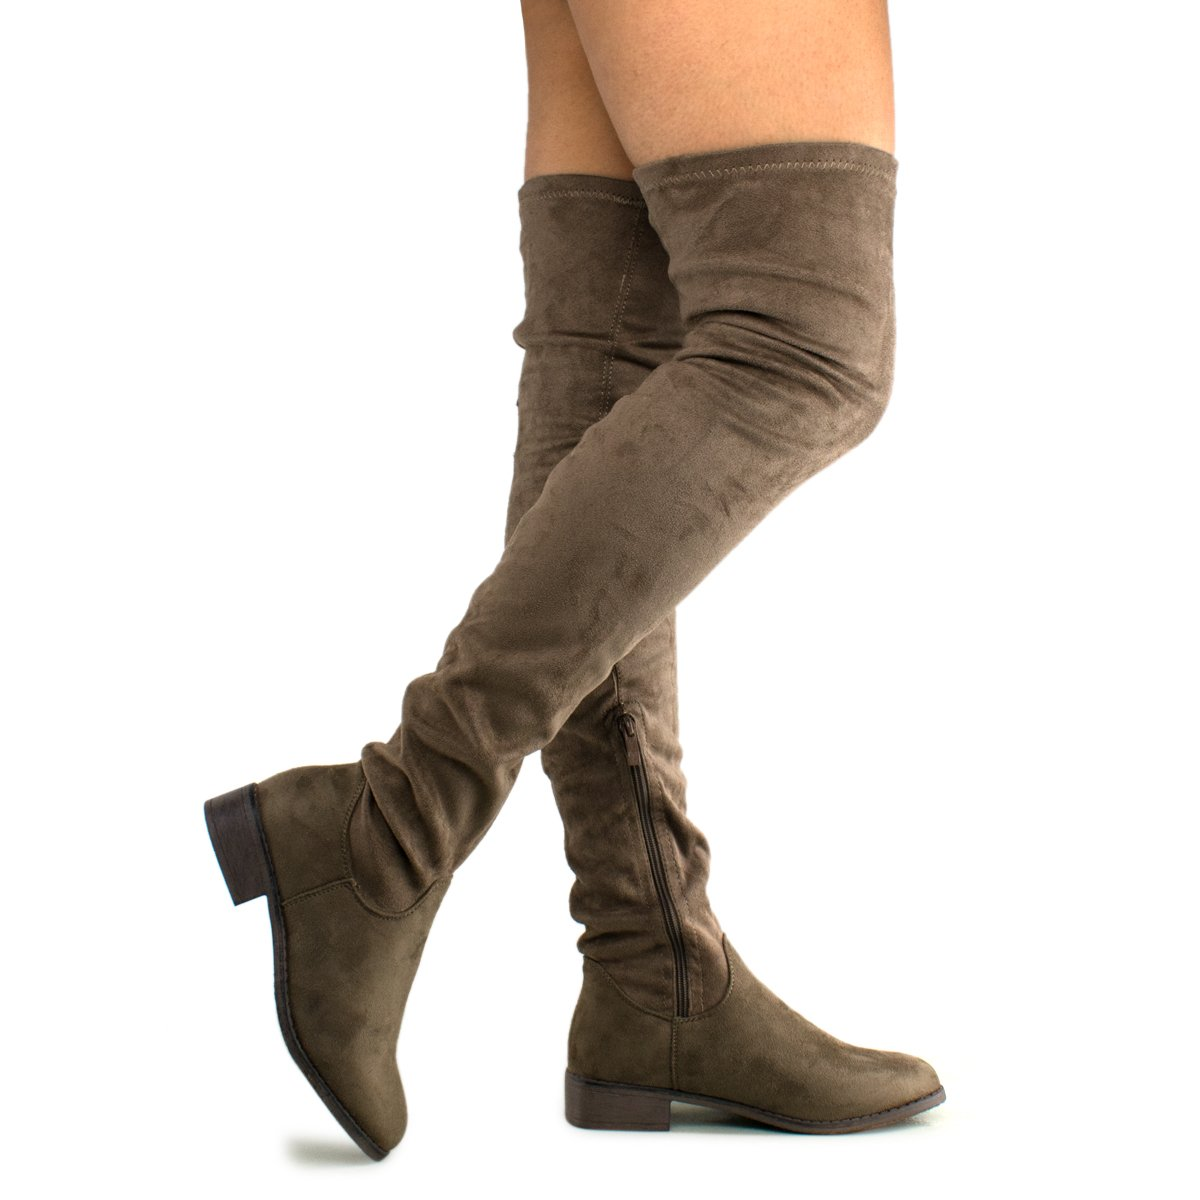 Premier Standard - Women's Fashion Comfy Vegan Suede Block Heel Thigh High Over The Knee Boots